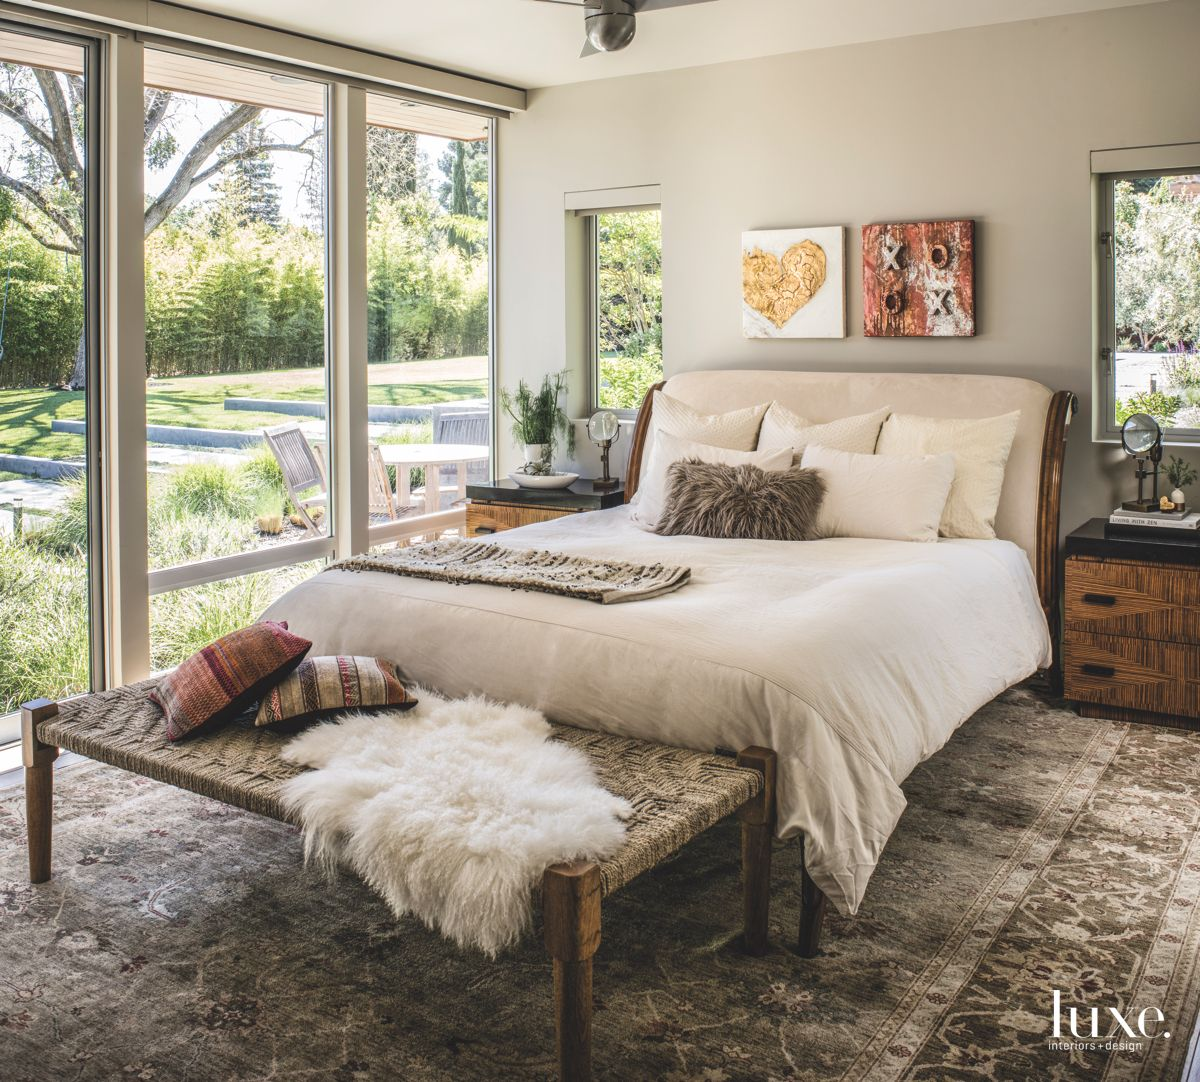 Antique Rug Master Bedroom with Fluffy Pillows and Throw with Artwork